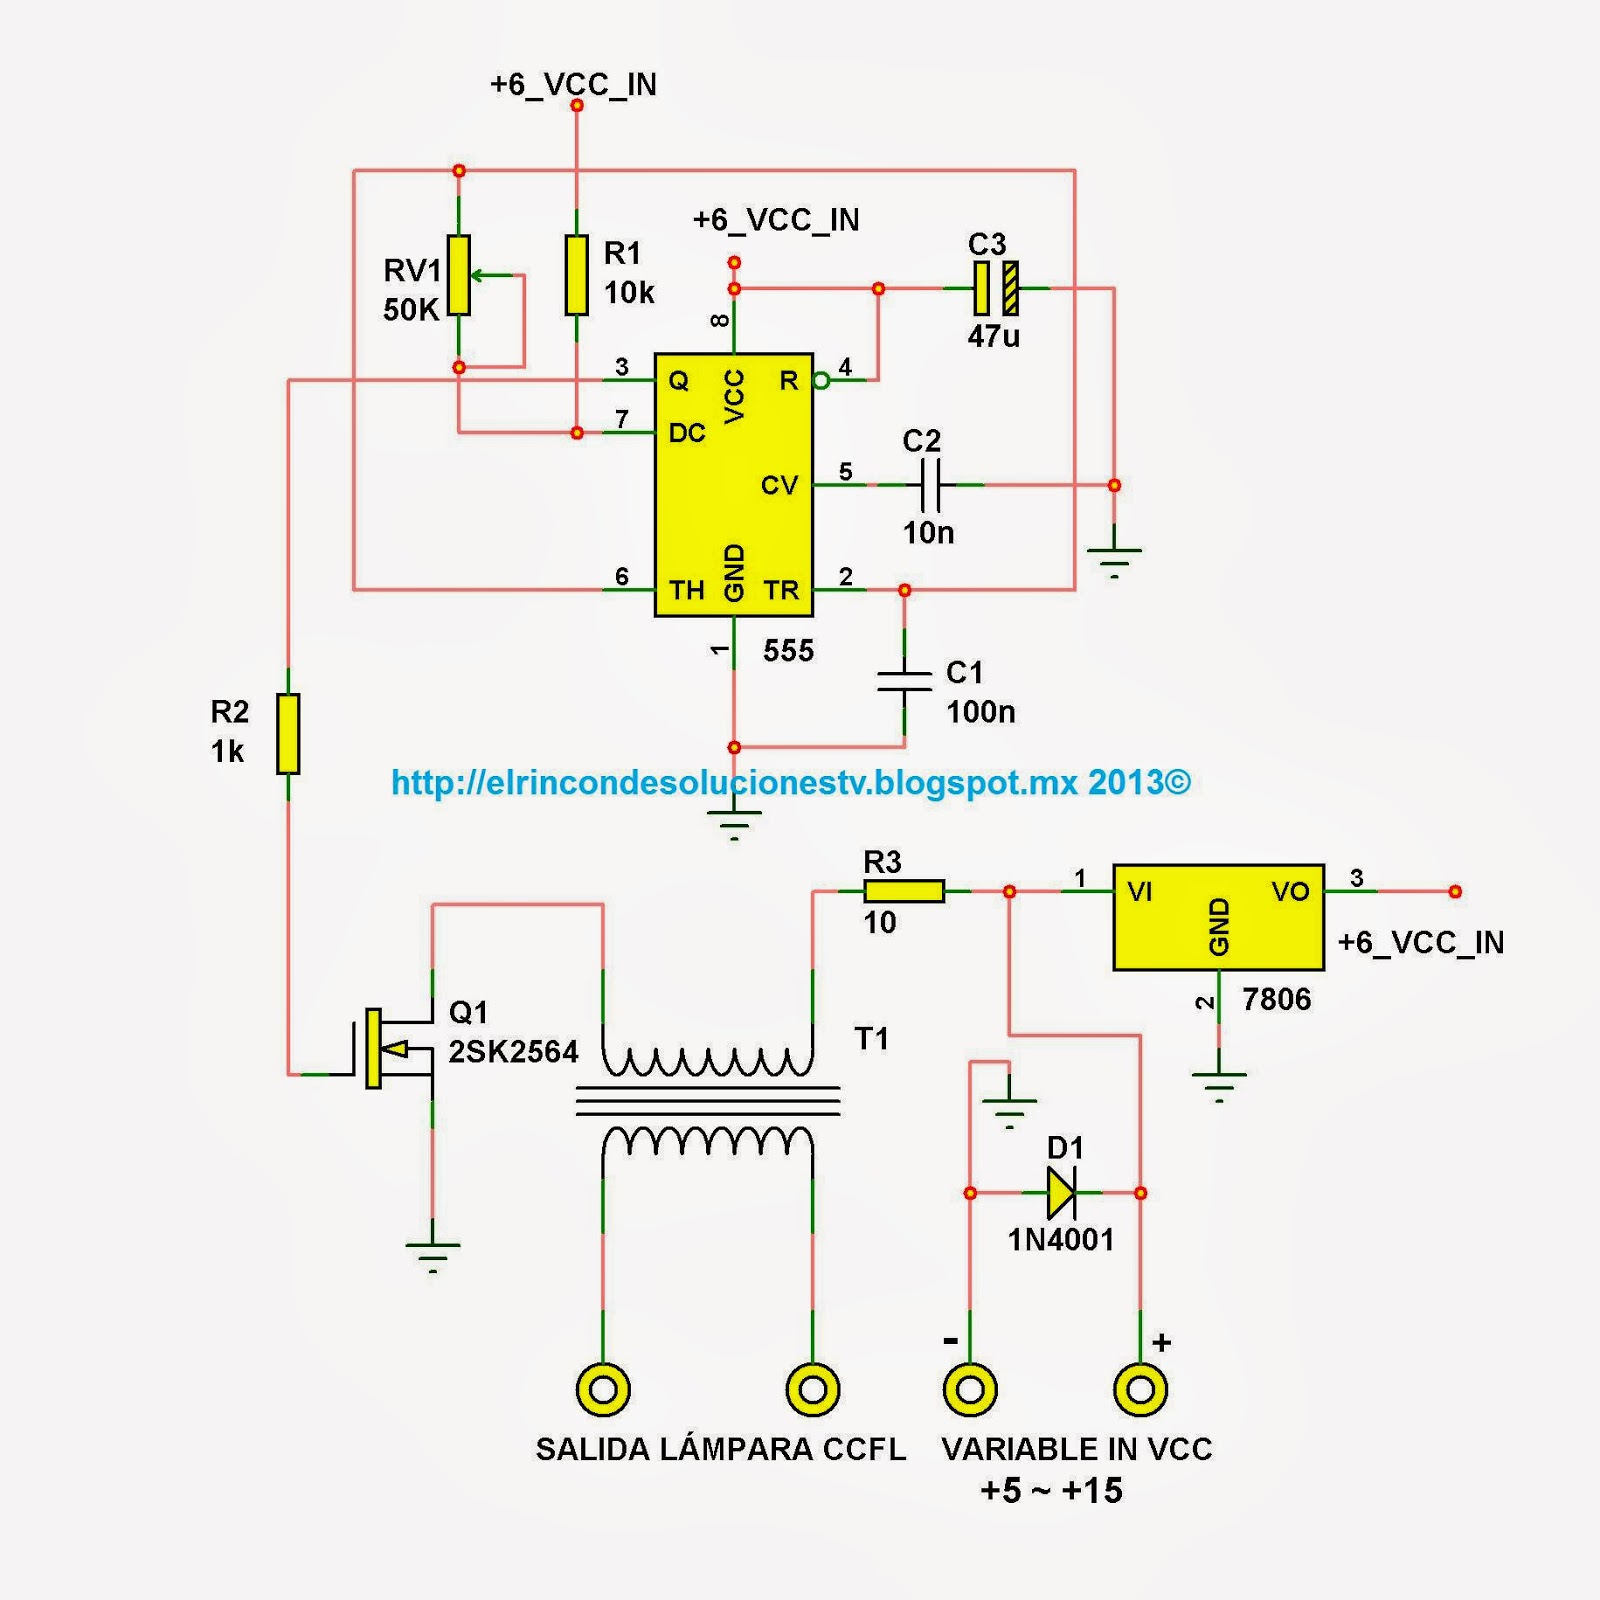 small resolution of samsung refrigerator schematic diagram samsung get free power cord connector types extension cord wiring diagram